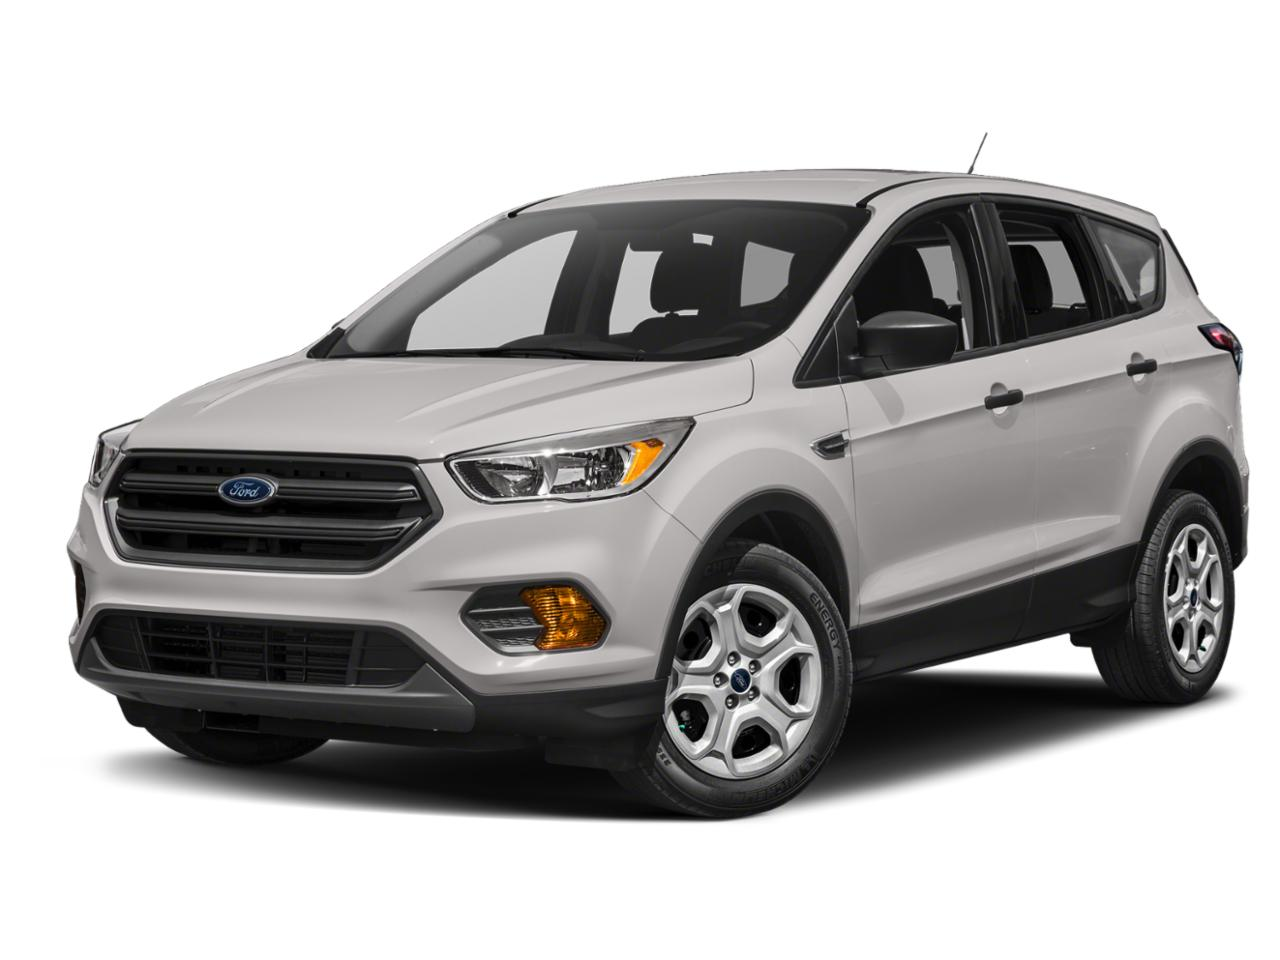 2019 Ford Escape Vehicle Photo in Raton, NM 87740